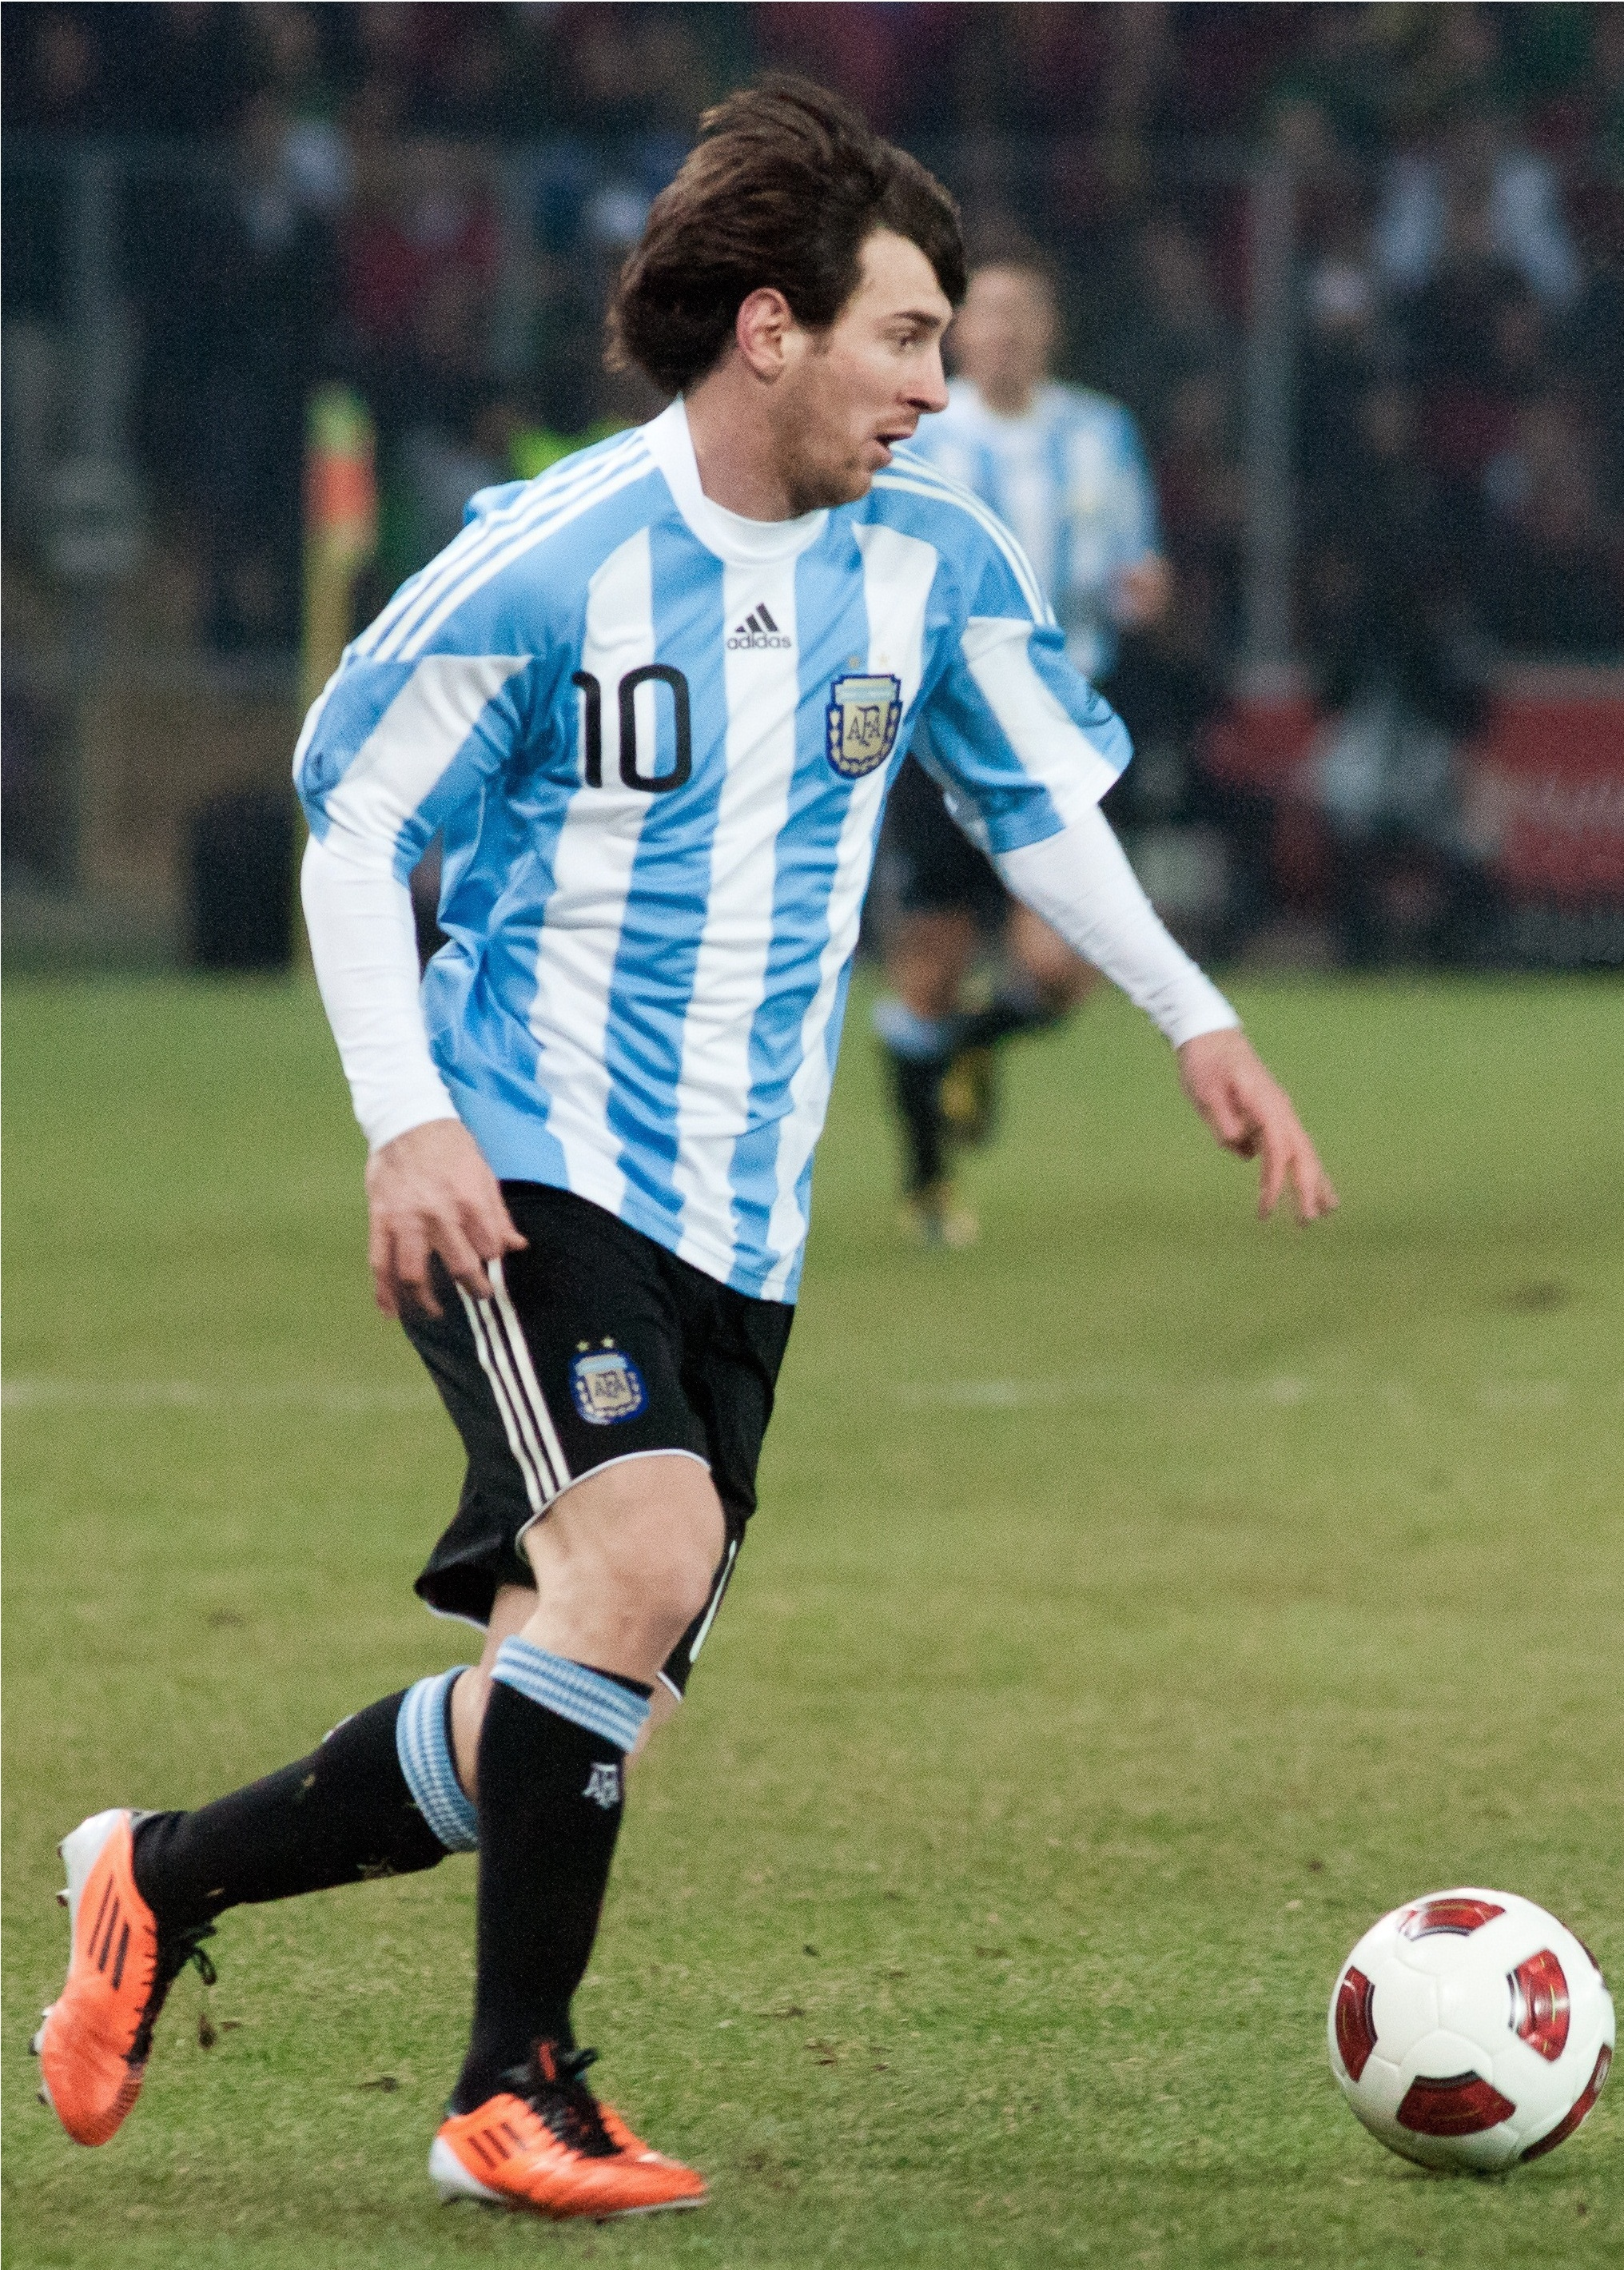 File:Lionel Messi, Player of Argentina national football team.JPG